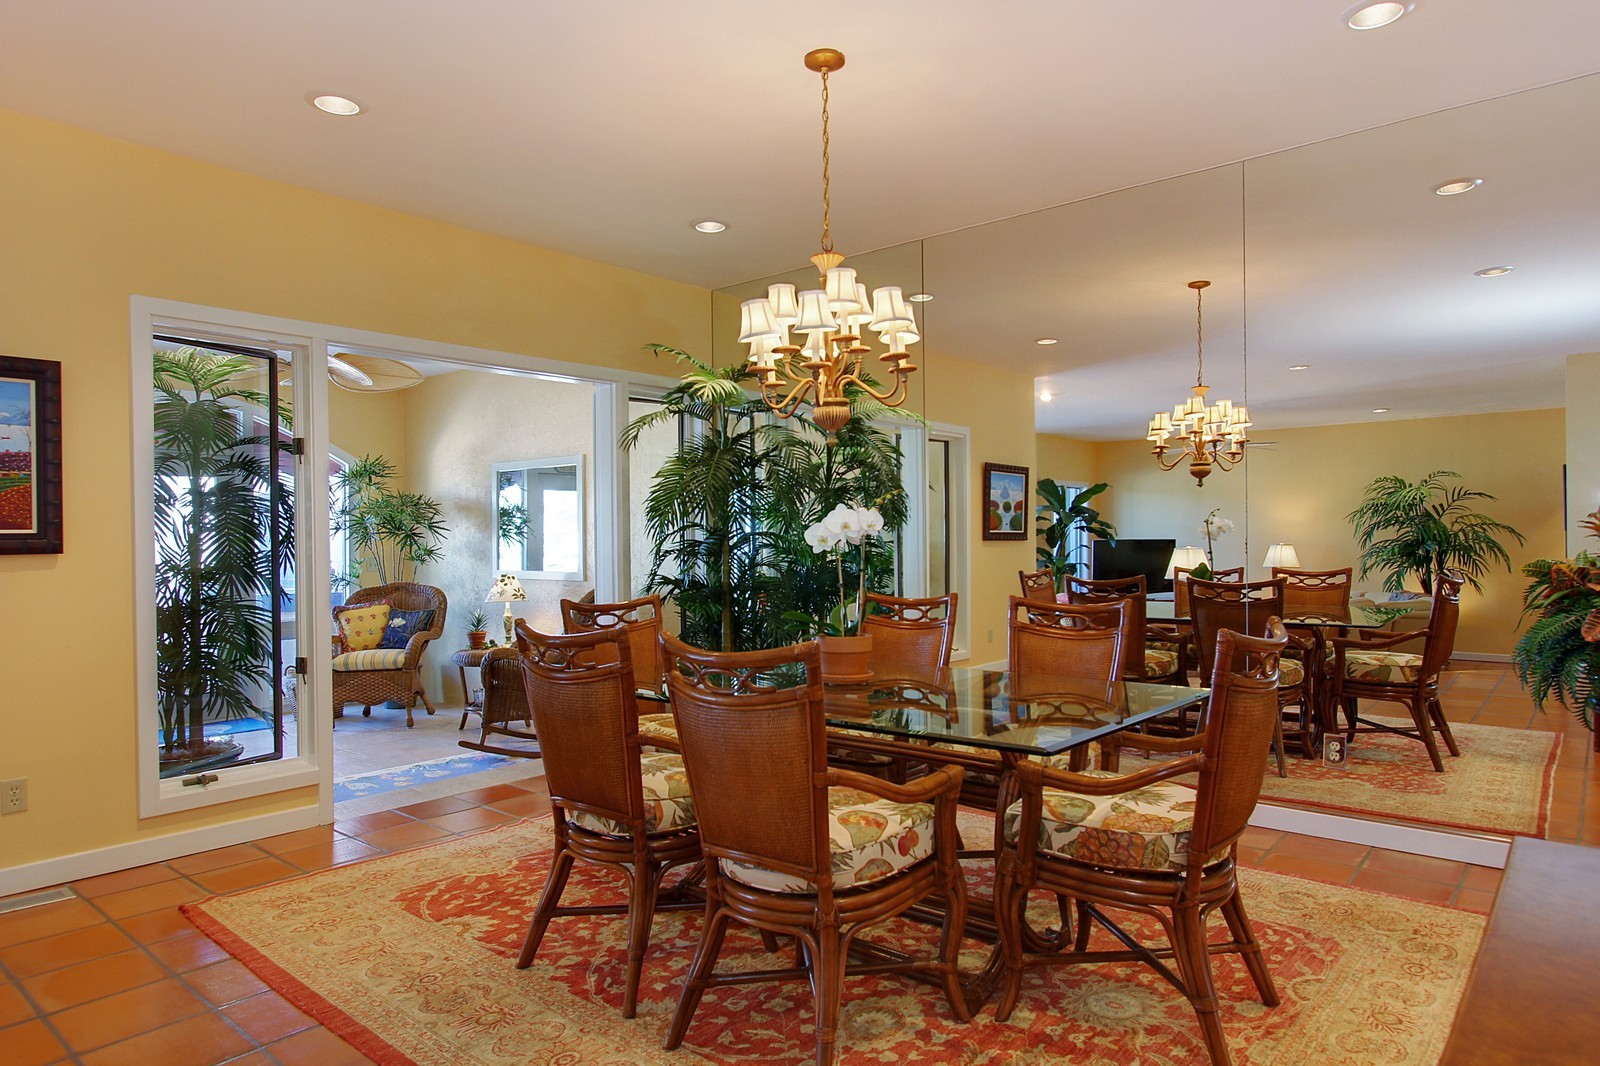 Real Estate Photography - 6509 SE South Marina Way, Stuart, FL, 34996 - Dining Room